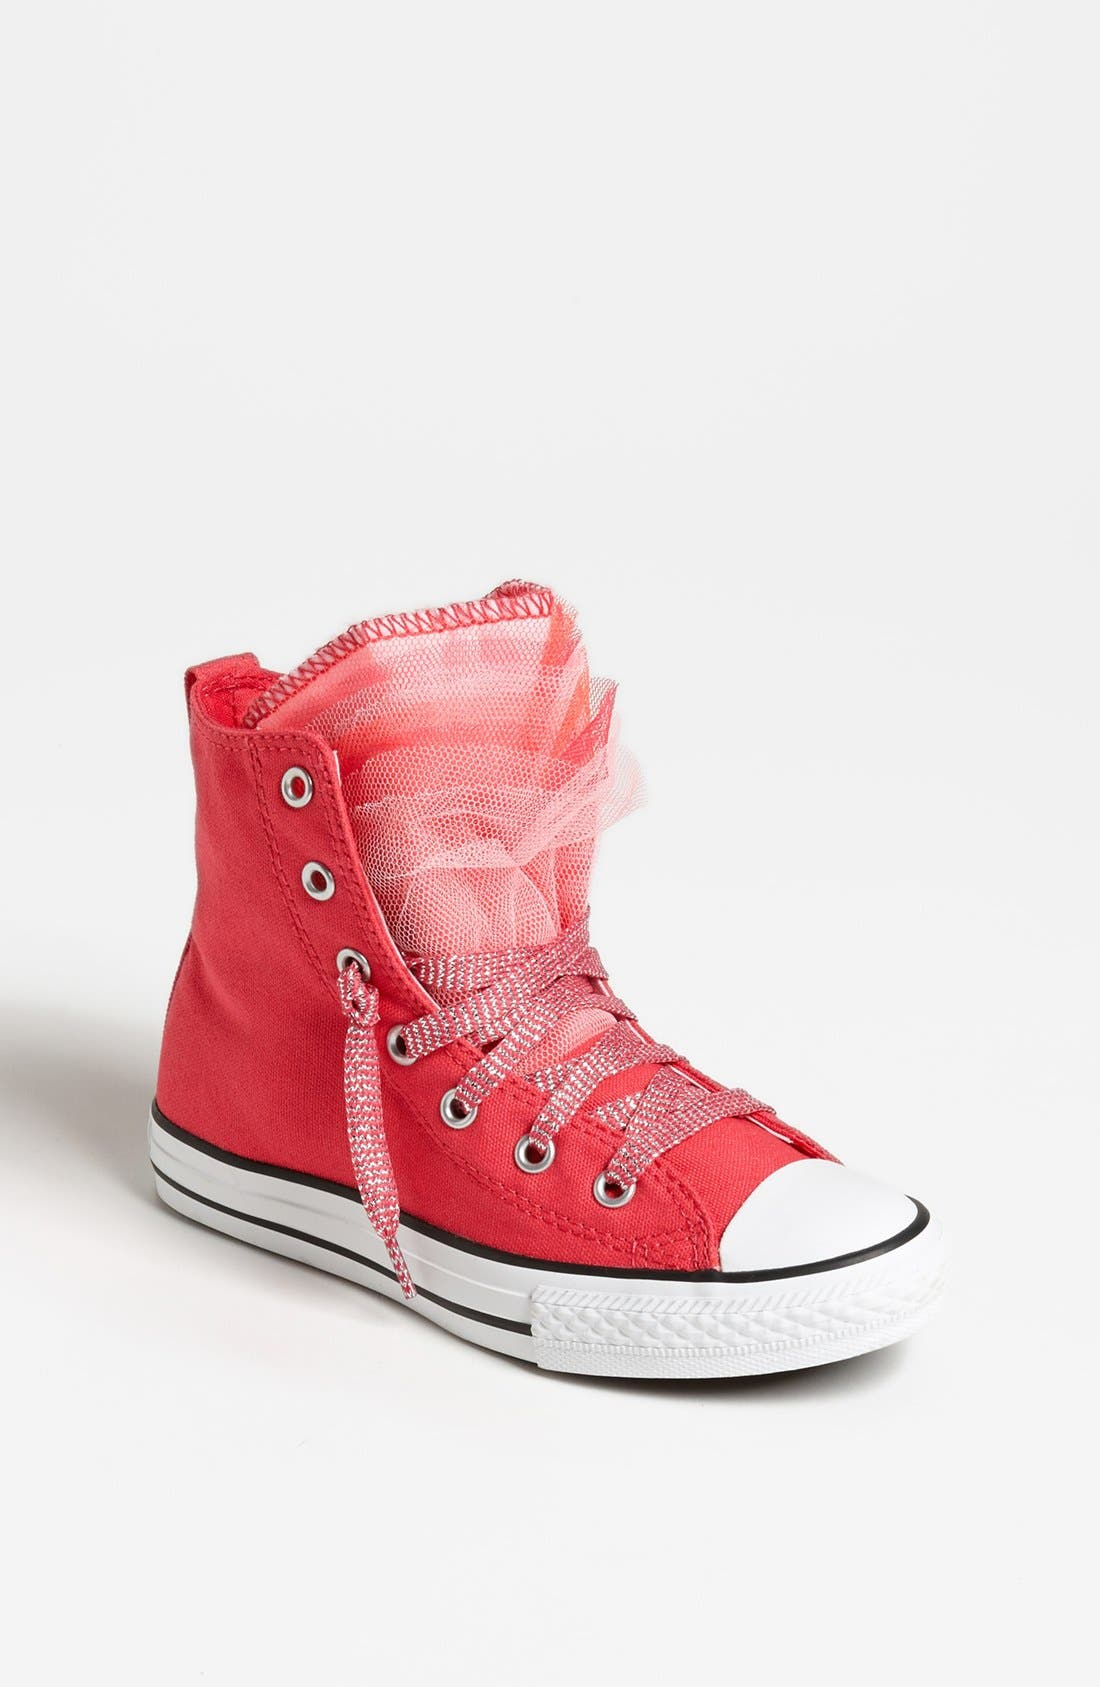 Main Image - Converse Chuck Taylor® All Star® 'Party' Sneaker (Toddler, Little Kid & Big Kid)